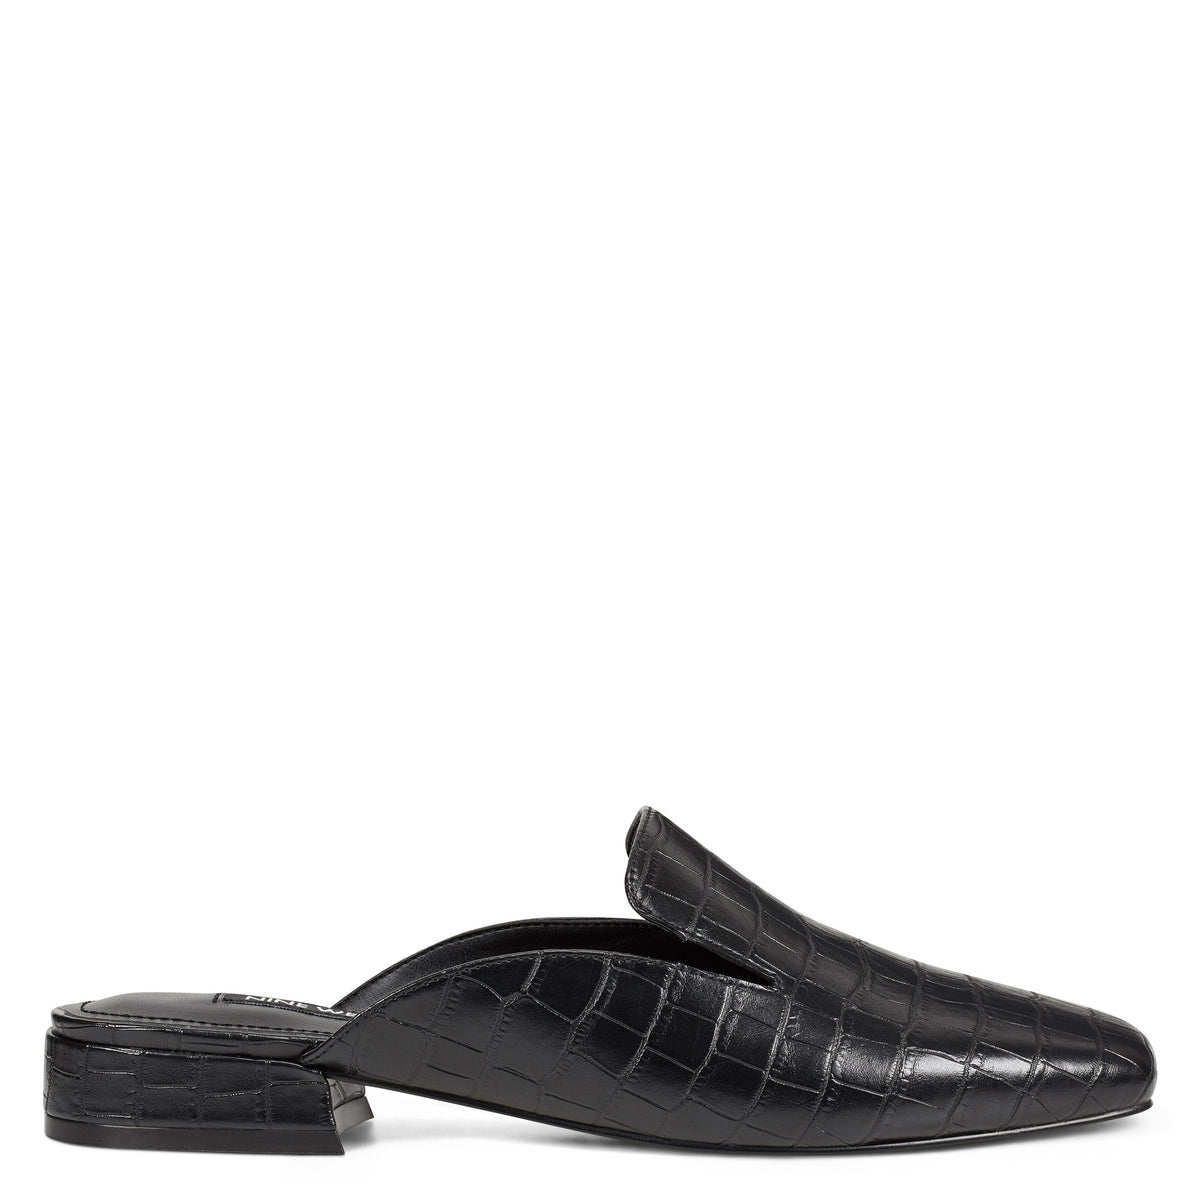 Smitten Loafer Mules